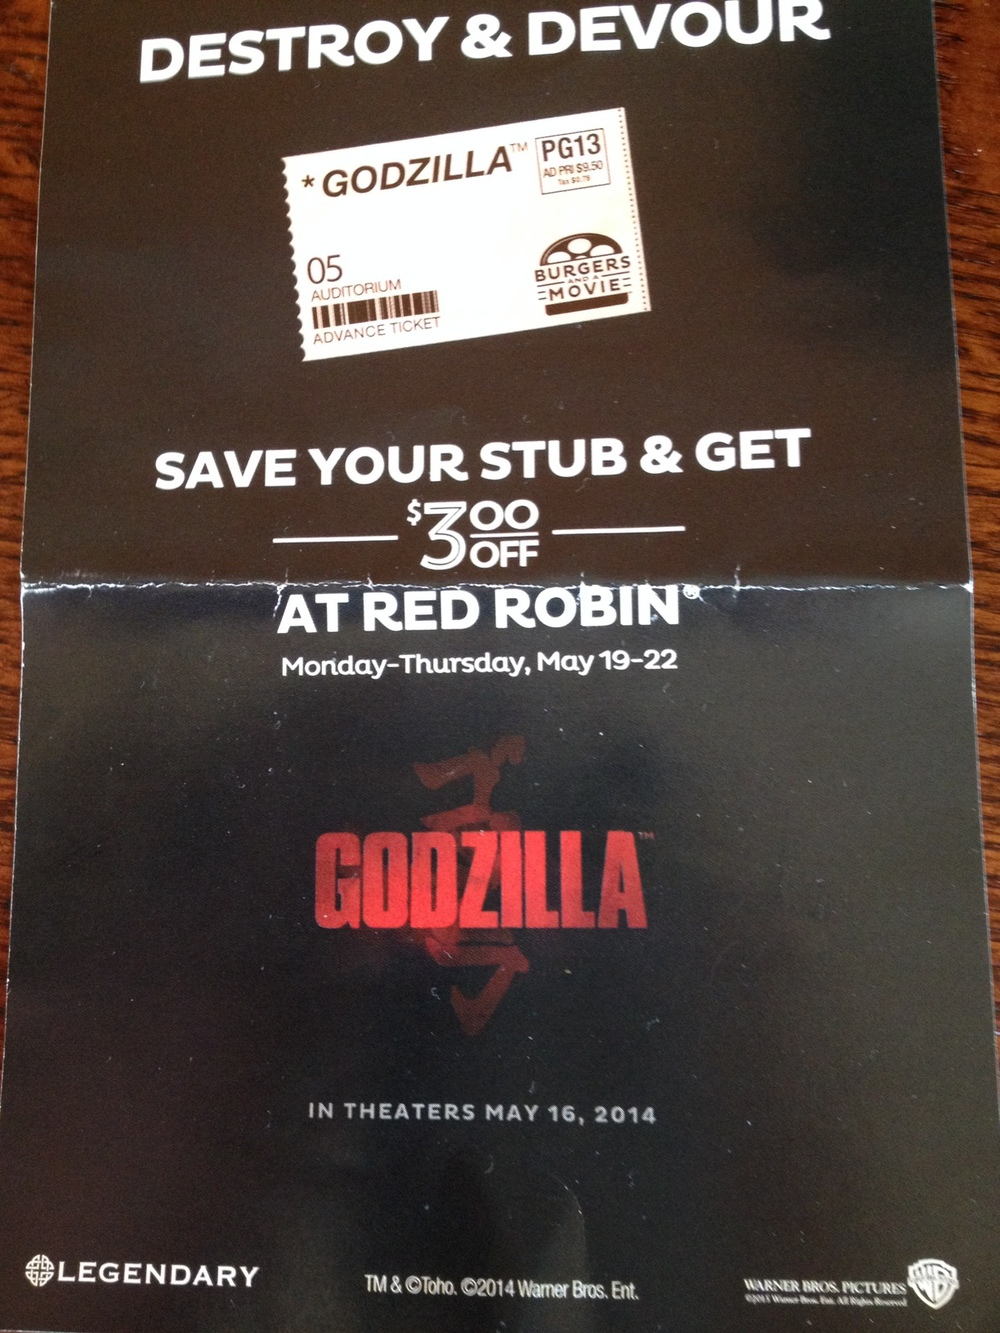 $3 off coupon for Red Robin...the best thing about seeing Godzilla